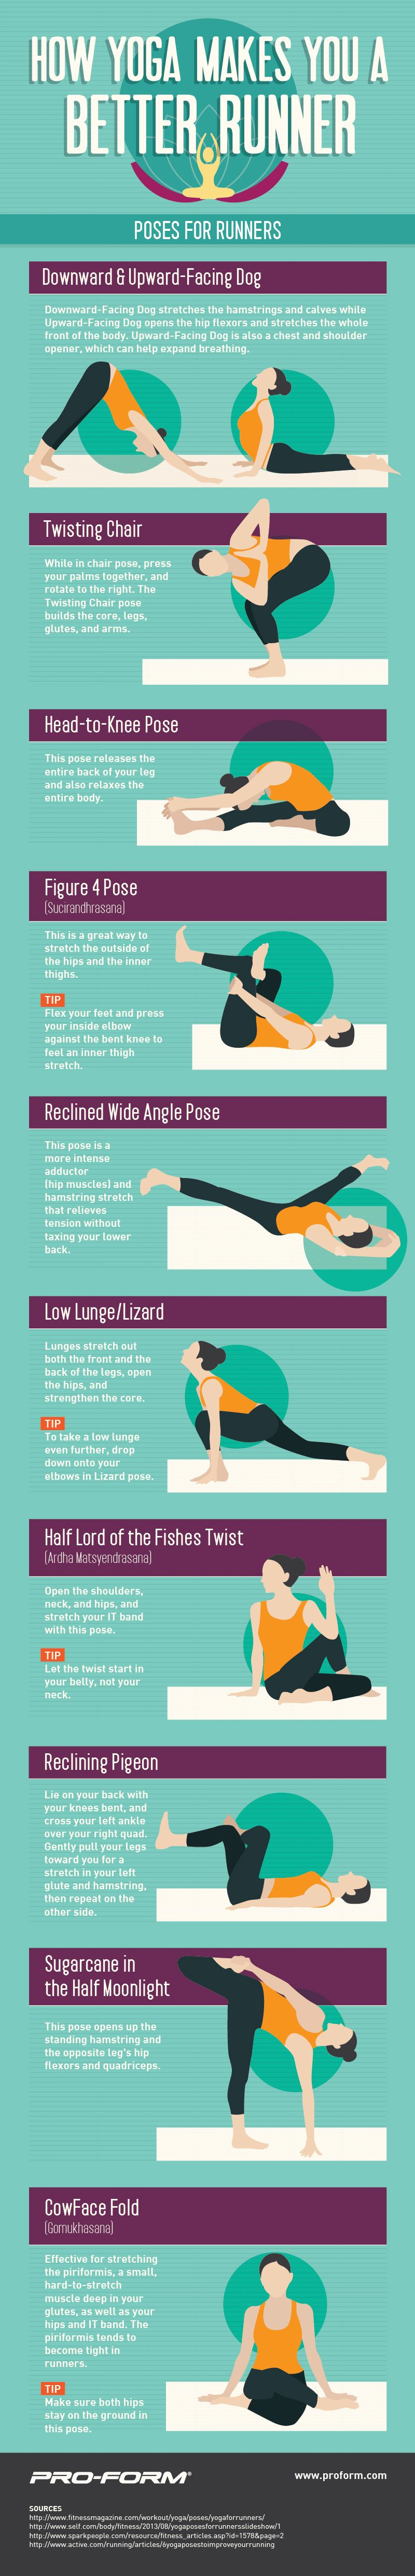 Infographic:+How+Yoga+Makes+You+a+Better+Runner:+Poses+for+Runners